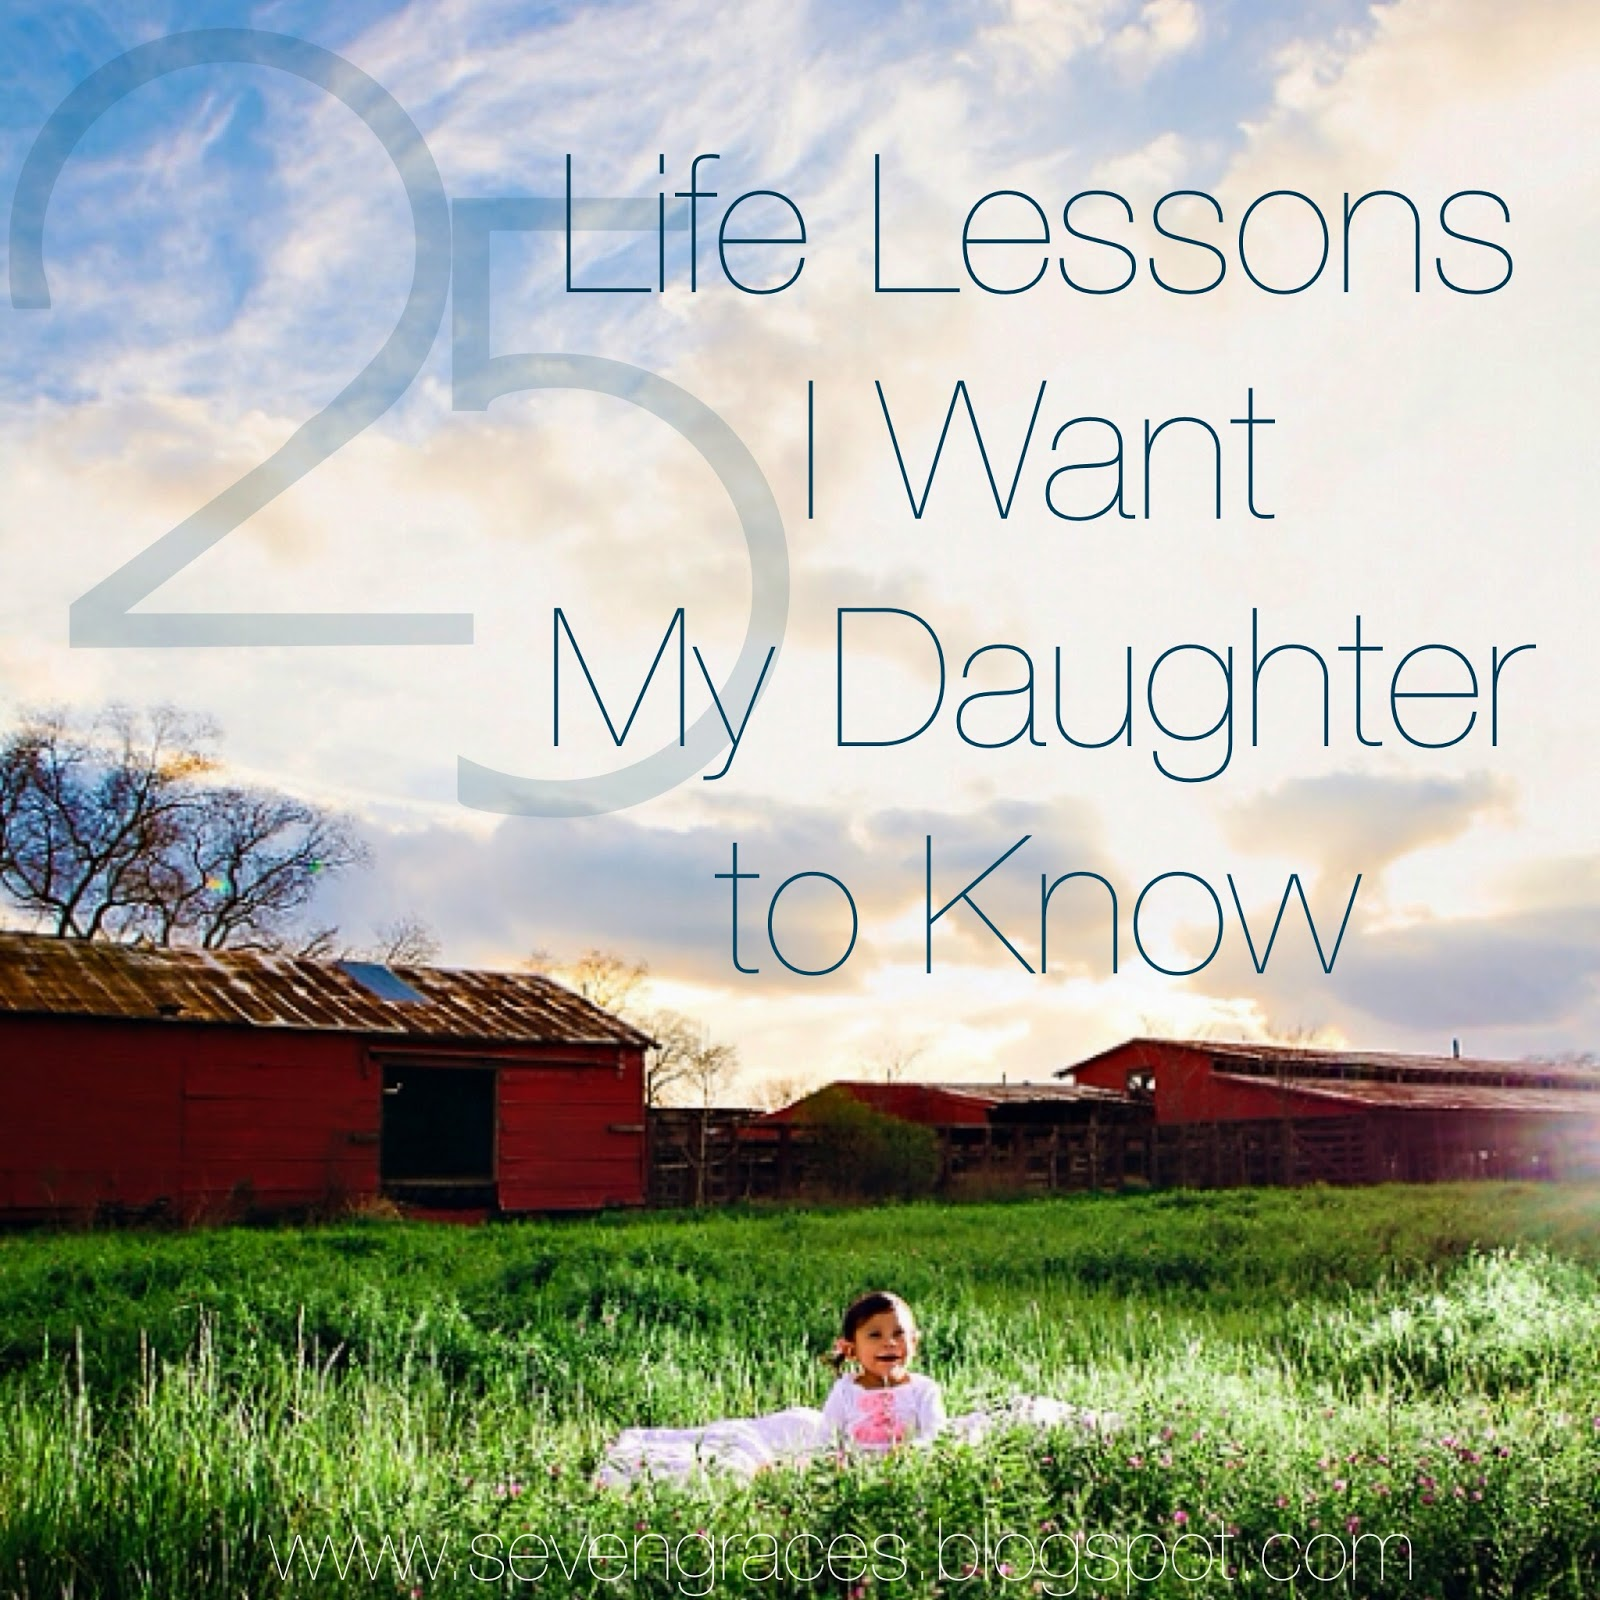 Things Want My Daughters Know Quotes: 25 Life Lessons I Want My Daughter To Know